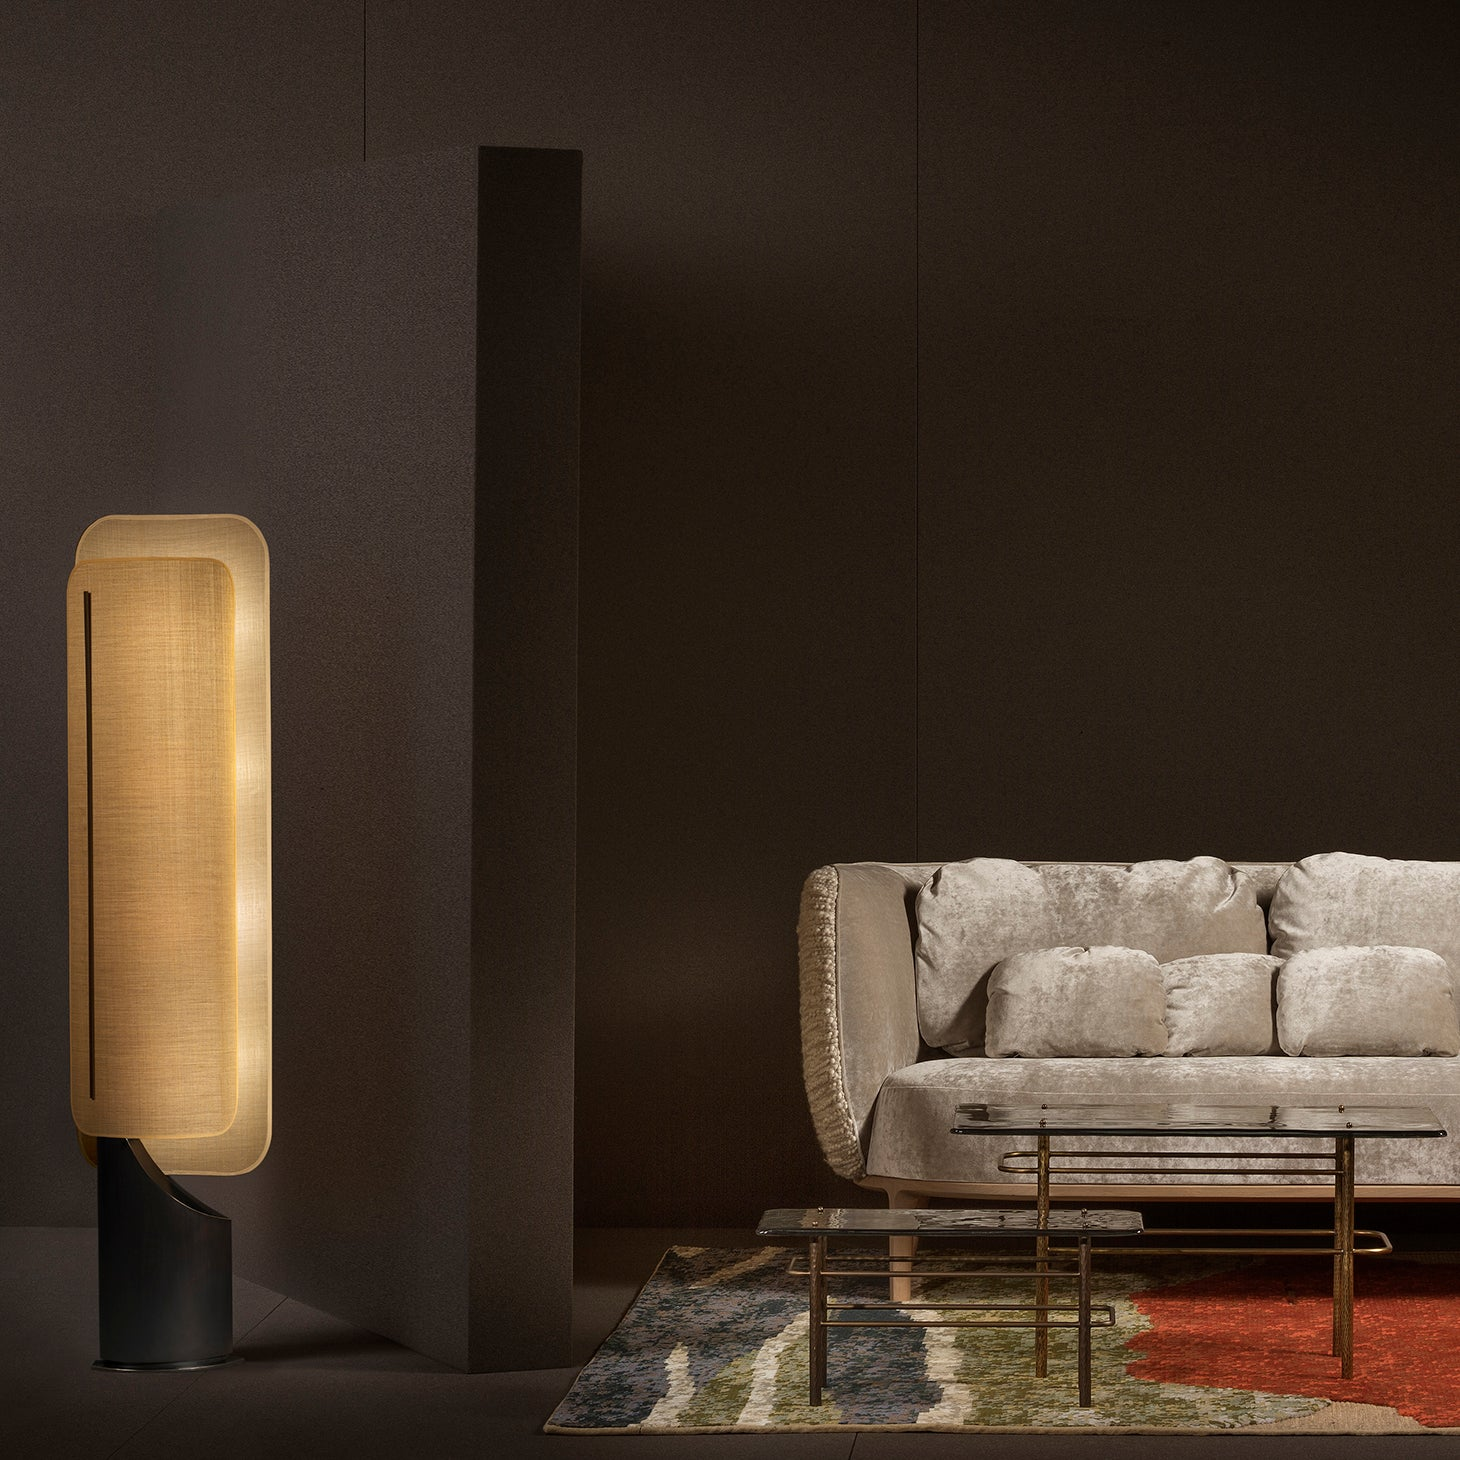 IBIZA Floor Lamp Lighting Bruno Moinard Designer Furniture Sku: 773-160-10029